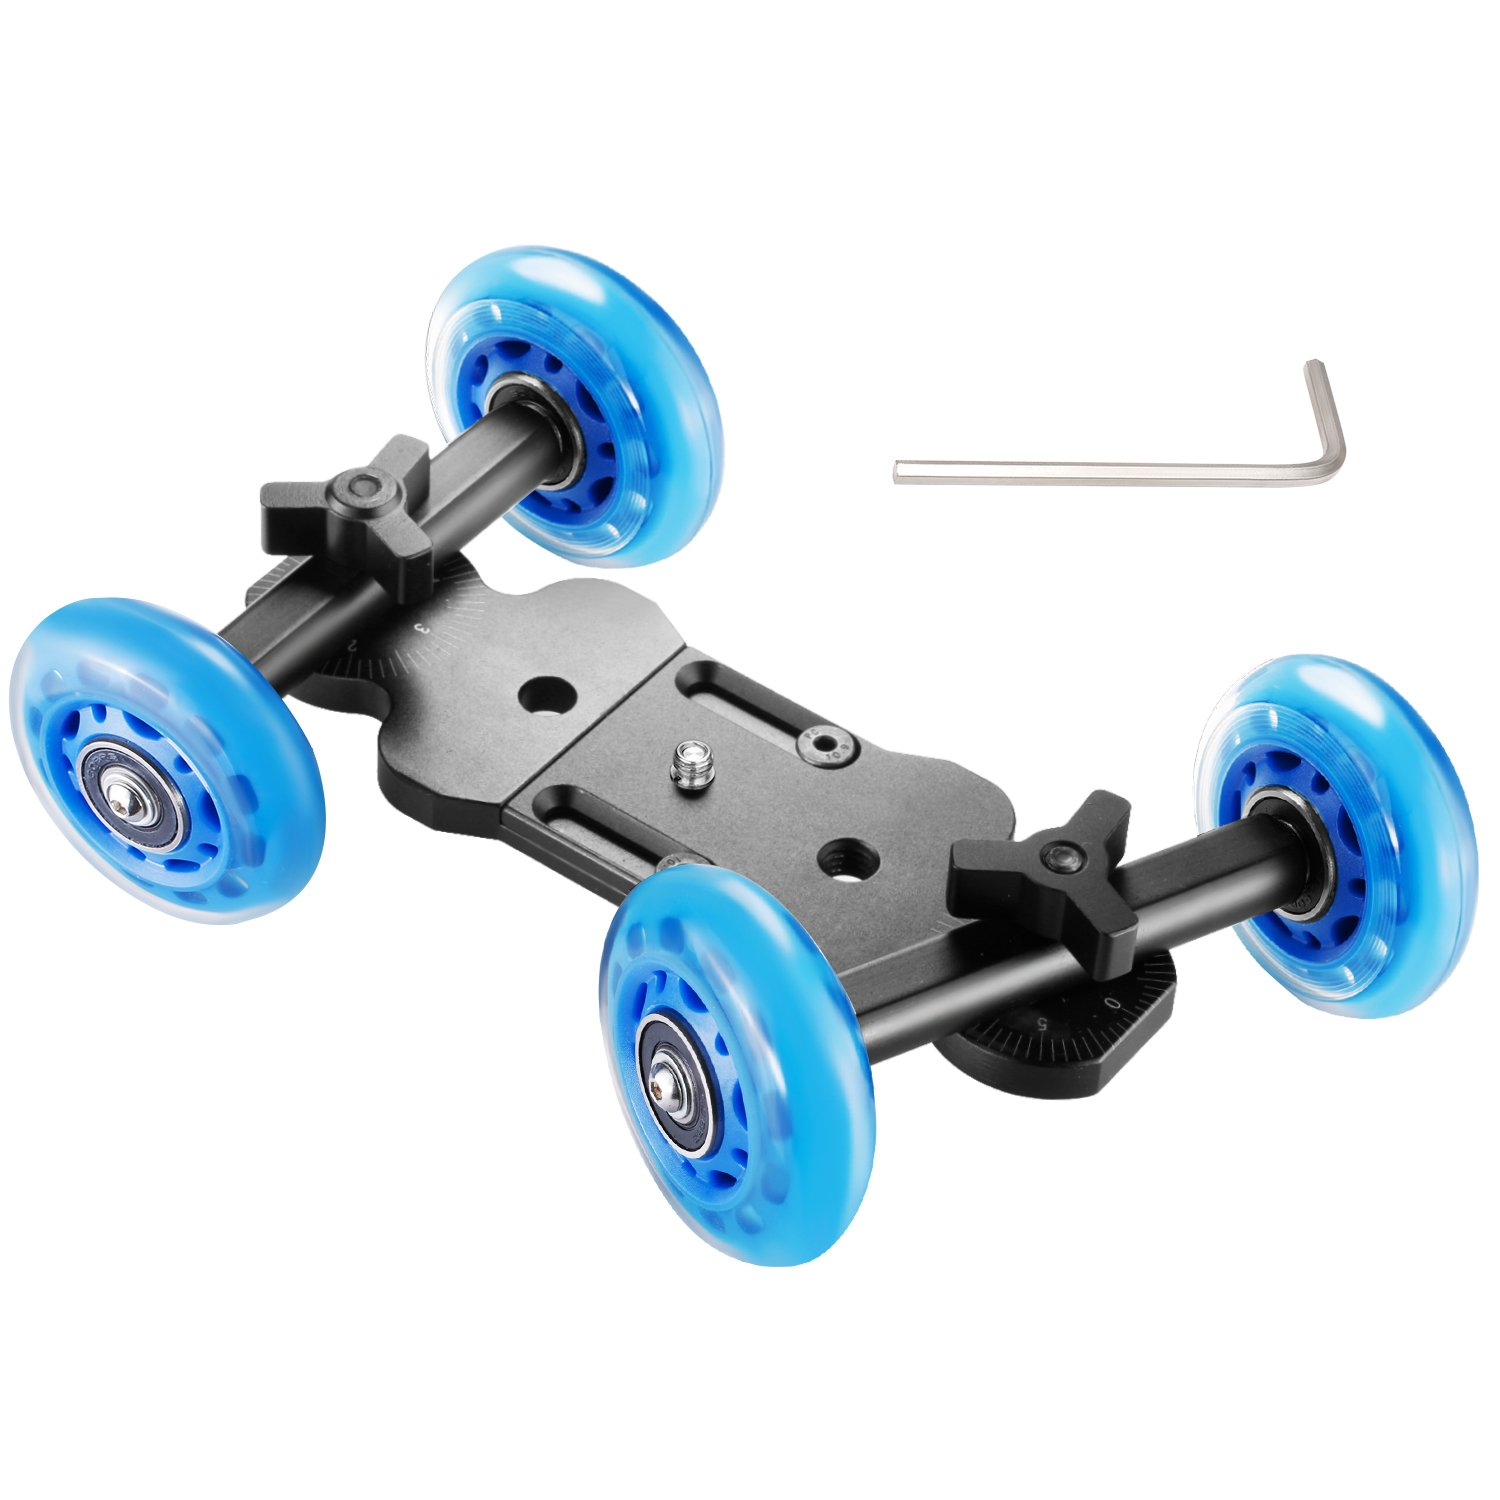 Neewer Noise-Free Table Dolly Car Rolling Slider Skater - Aluminum Alloy Board and Rotatable Fluid Silicone Wheels,22 Pounds/10 Kilograms Load Capacity for DSLRs Video Camcorders (Black/Blue)